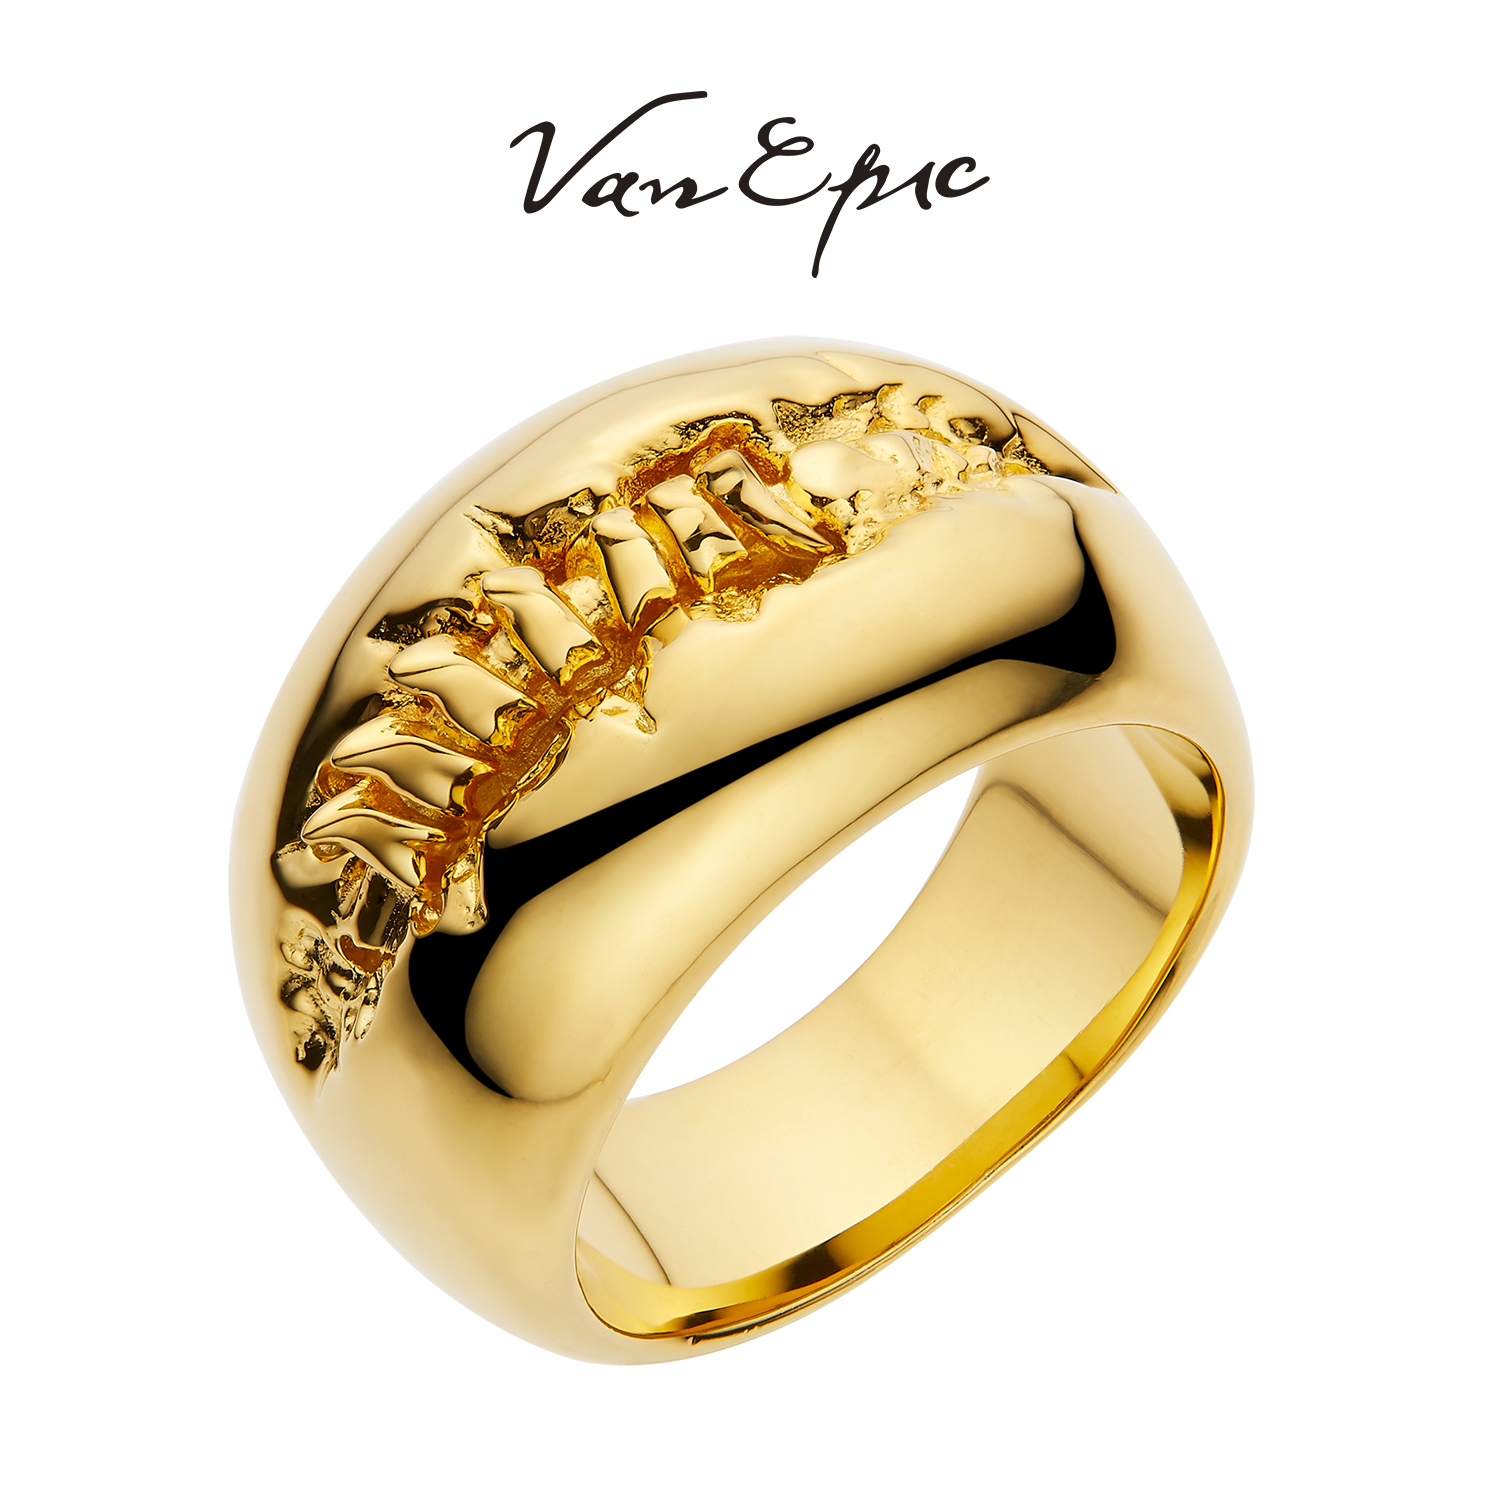 Van epic lost spine mens and womens ring original design pure silver plated 24K gold creative personality